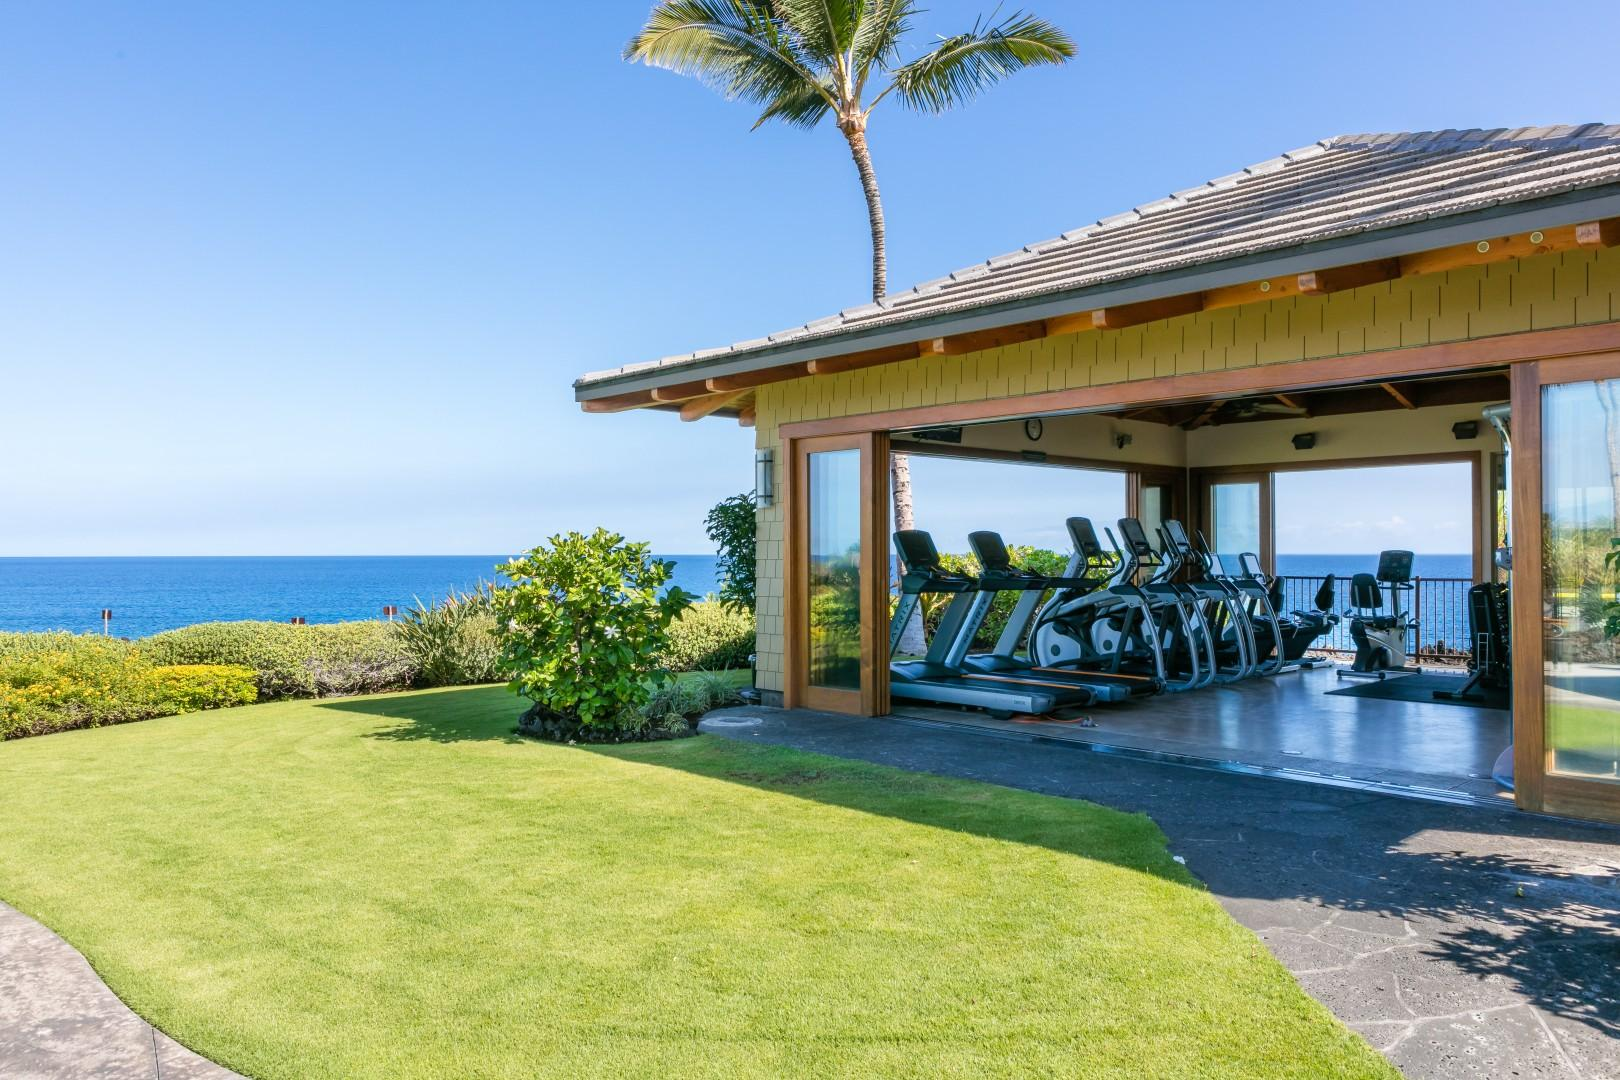 Working out is a pleasure at the oceanfront workout facility. Enjoy watching the whales as you get fit.